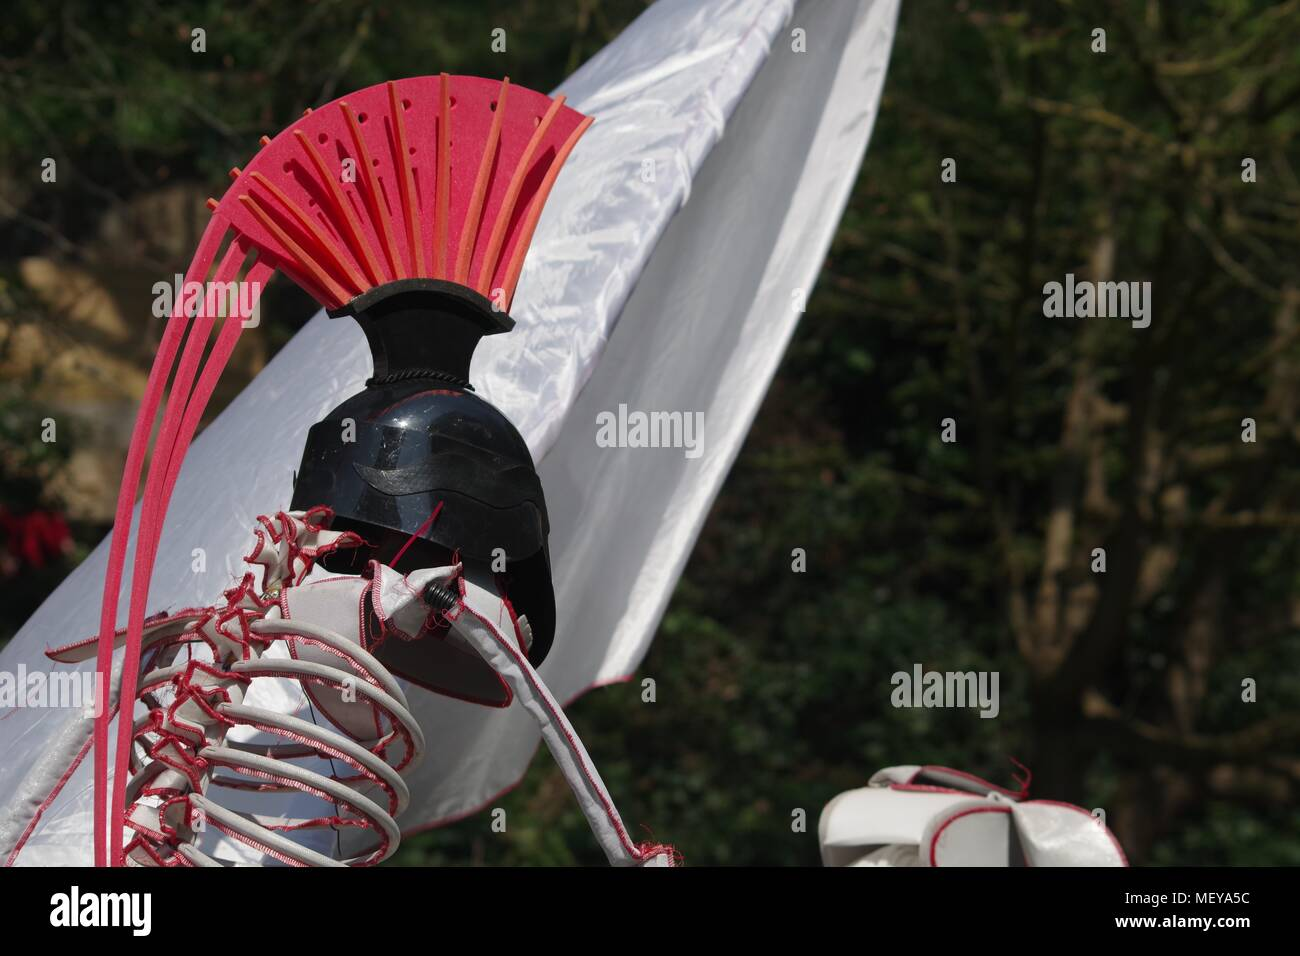 Roman Horse and Rider Skeleton Puppet with White Silky Banner at ramm's Carnival of the Animals in Rougemont Gardens. Exeter, Devon, UK. April, 2018. - Stock Image